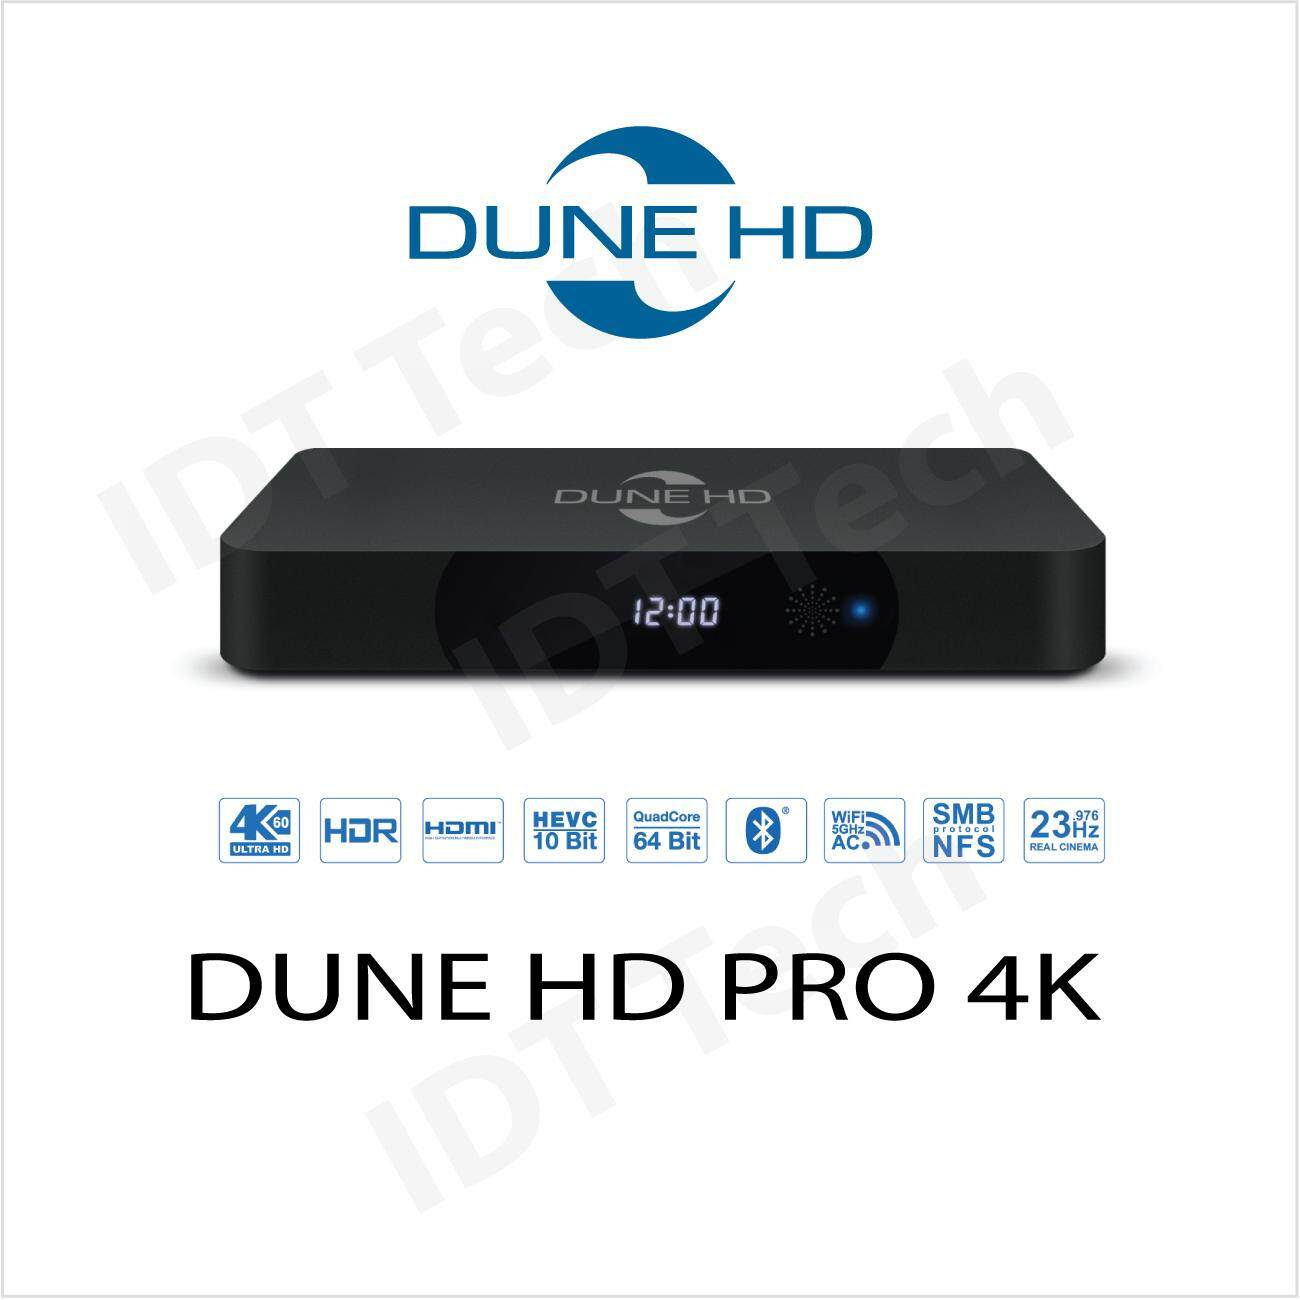 Dune Hd Pro 4k Media Player By Idt Tech.